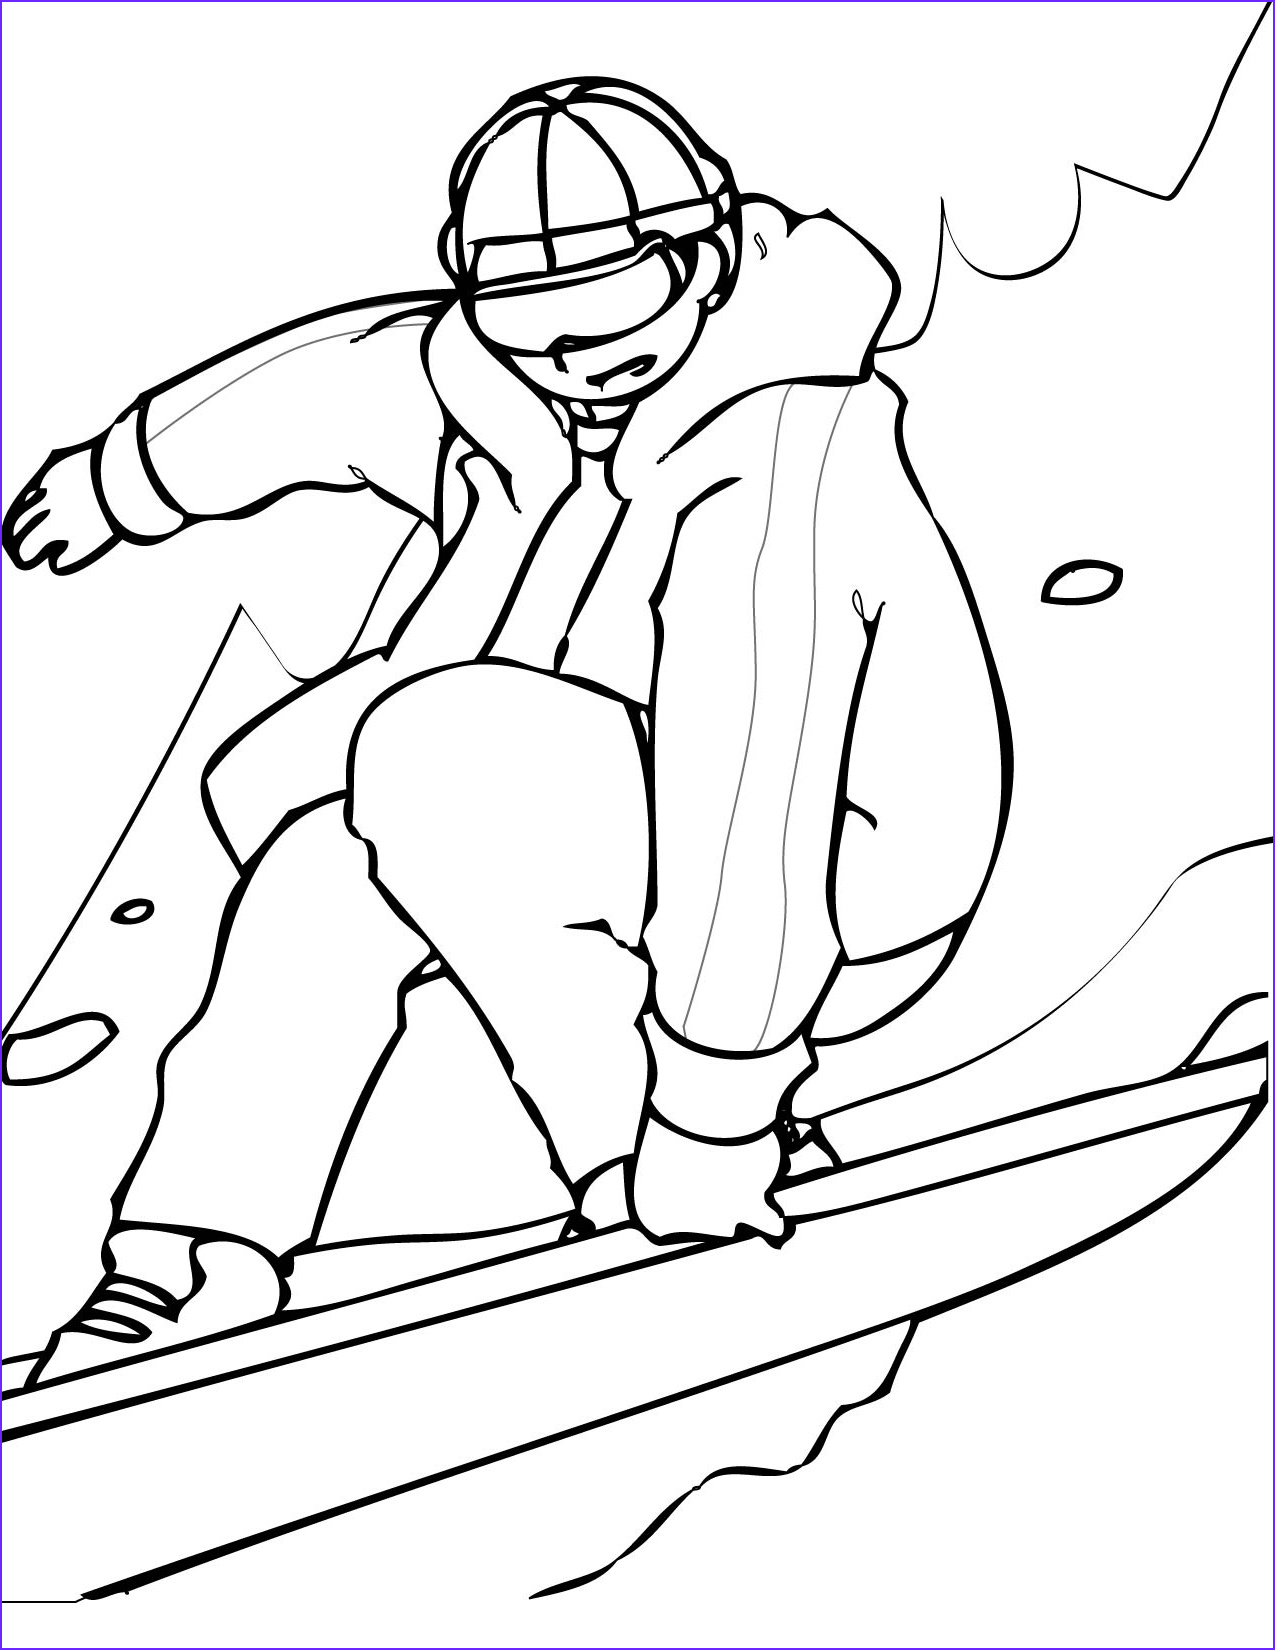 Sports Coloring Book Beautiful Collection Sports Coloring Pages Snowboarding Coloringstar